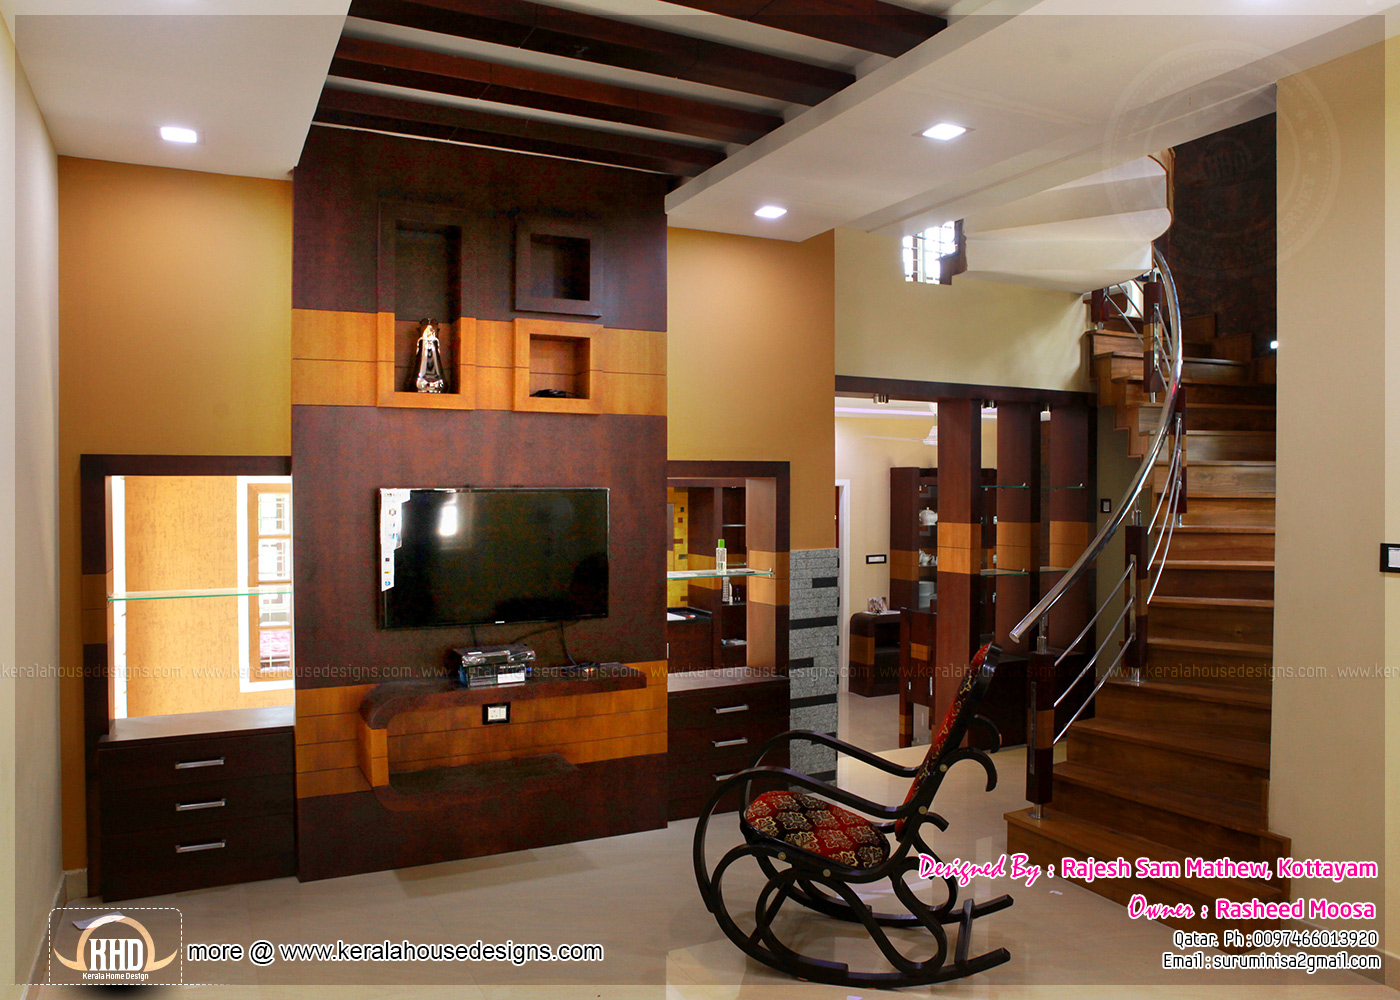 Kerala interior design with photos kerala home design for Interior designs pictures